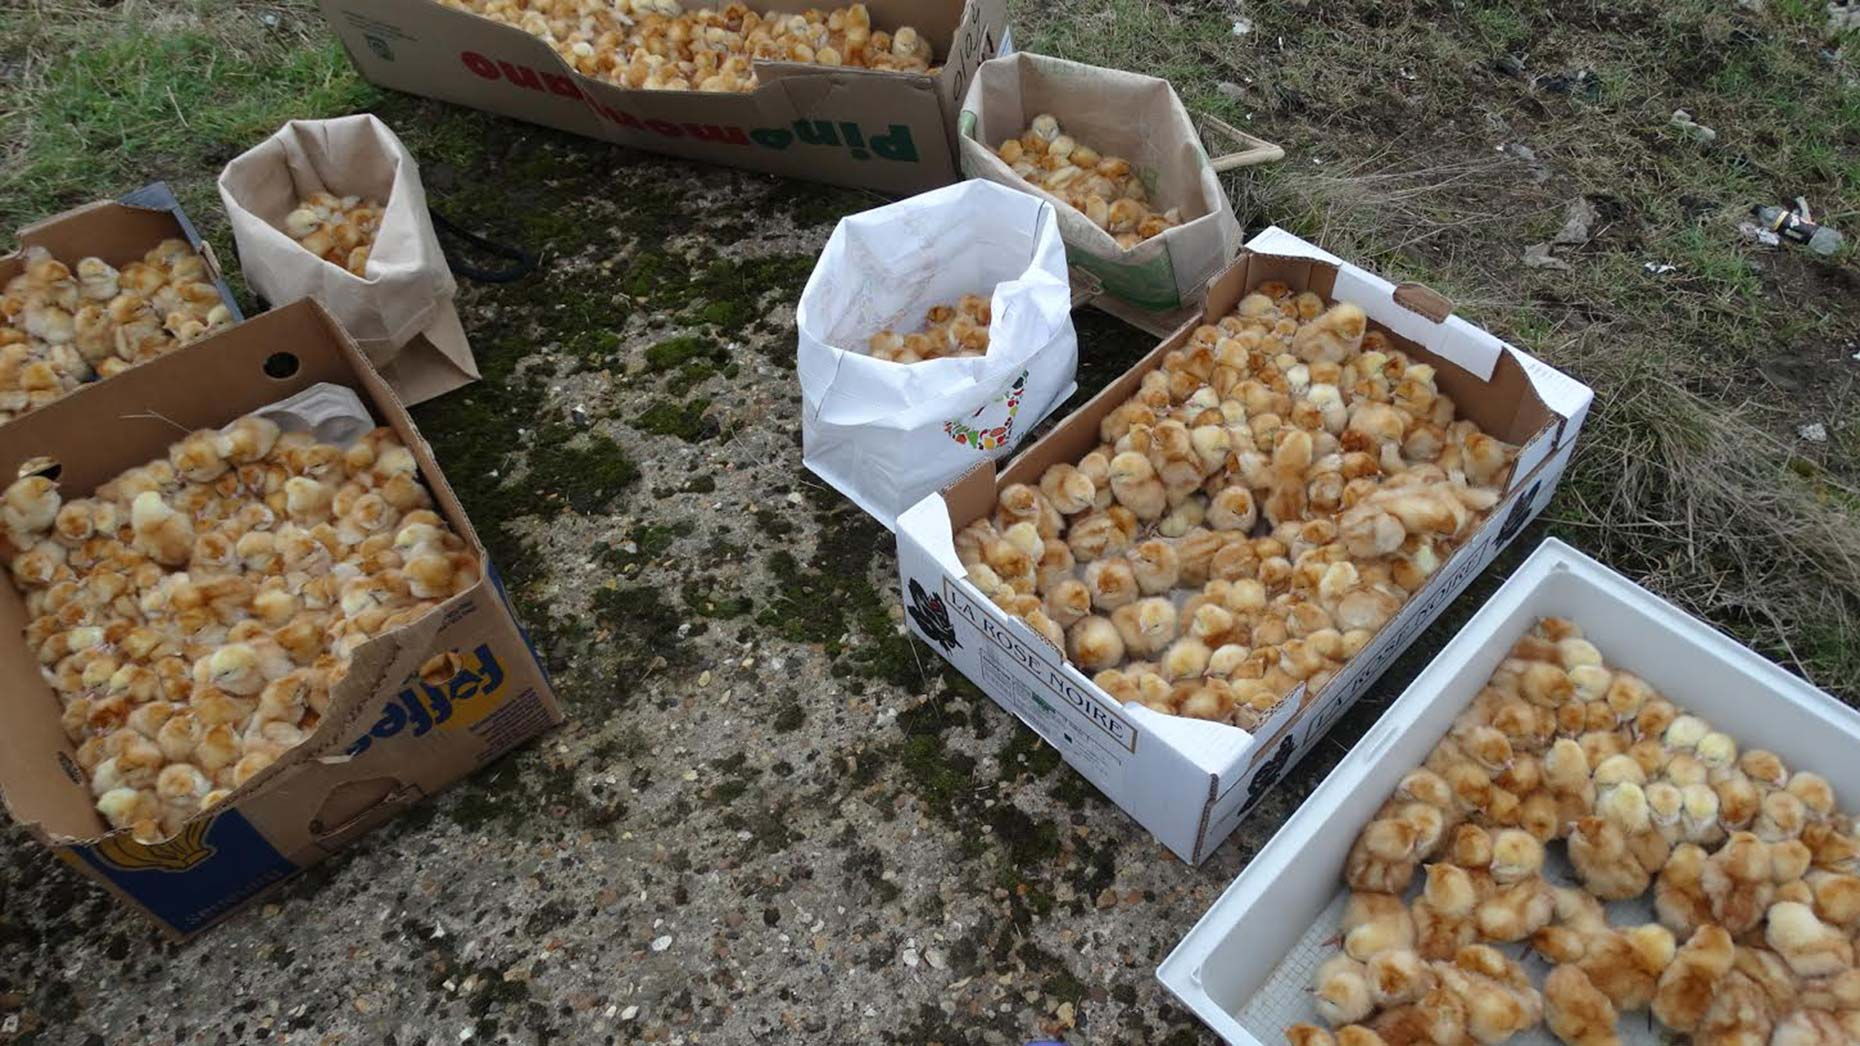 1000 day-old chicks found abandoned in Crowland field